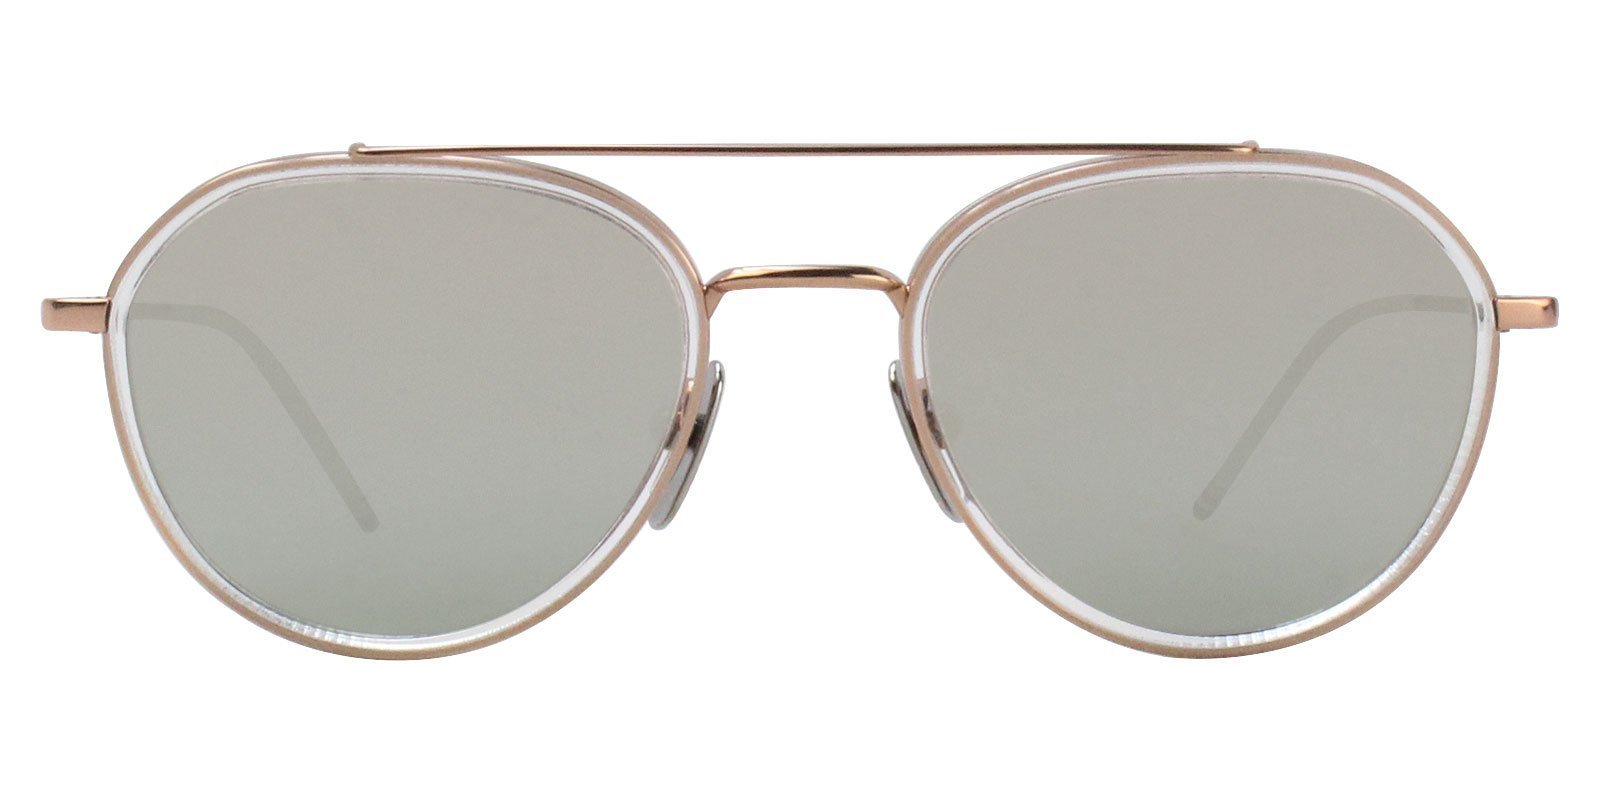 Thom Browne TB-801-G Rose Gold / Silver Lens Mirror Sunglasses-Sunglasses-Designer Eyes